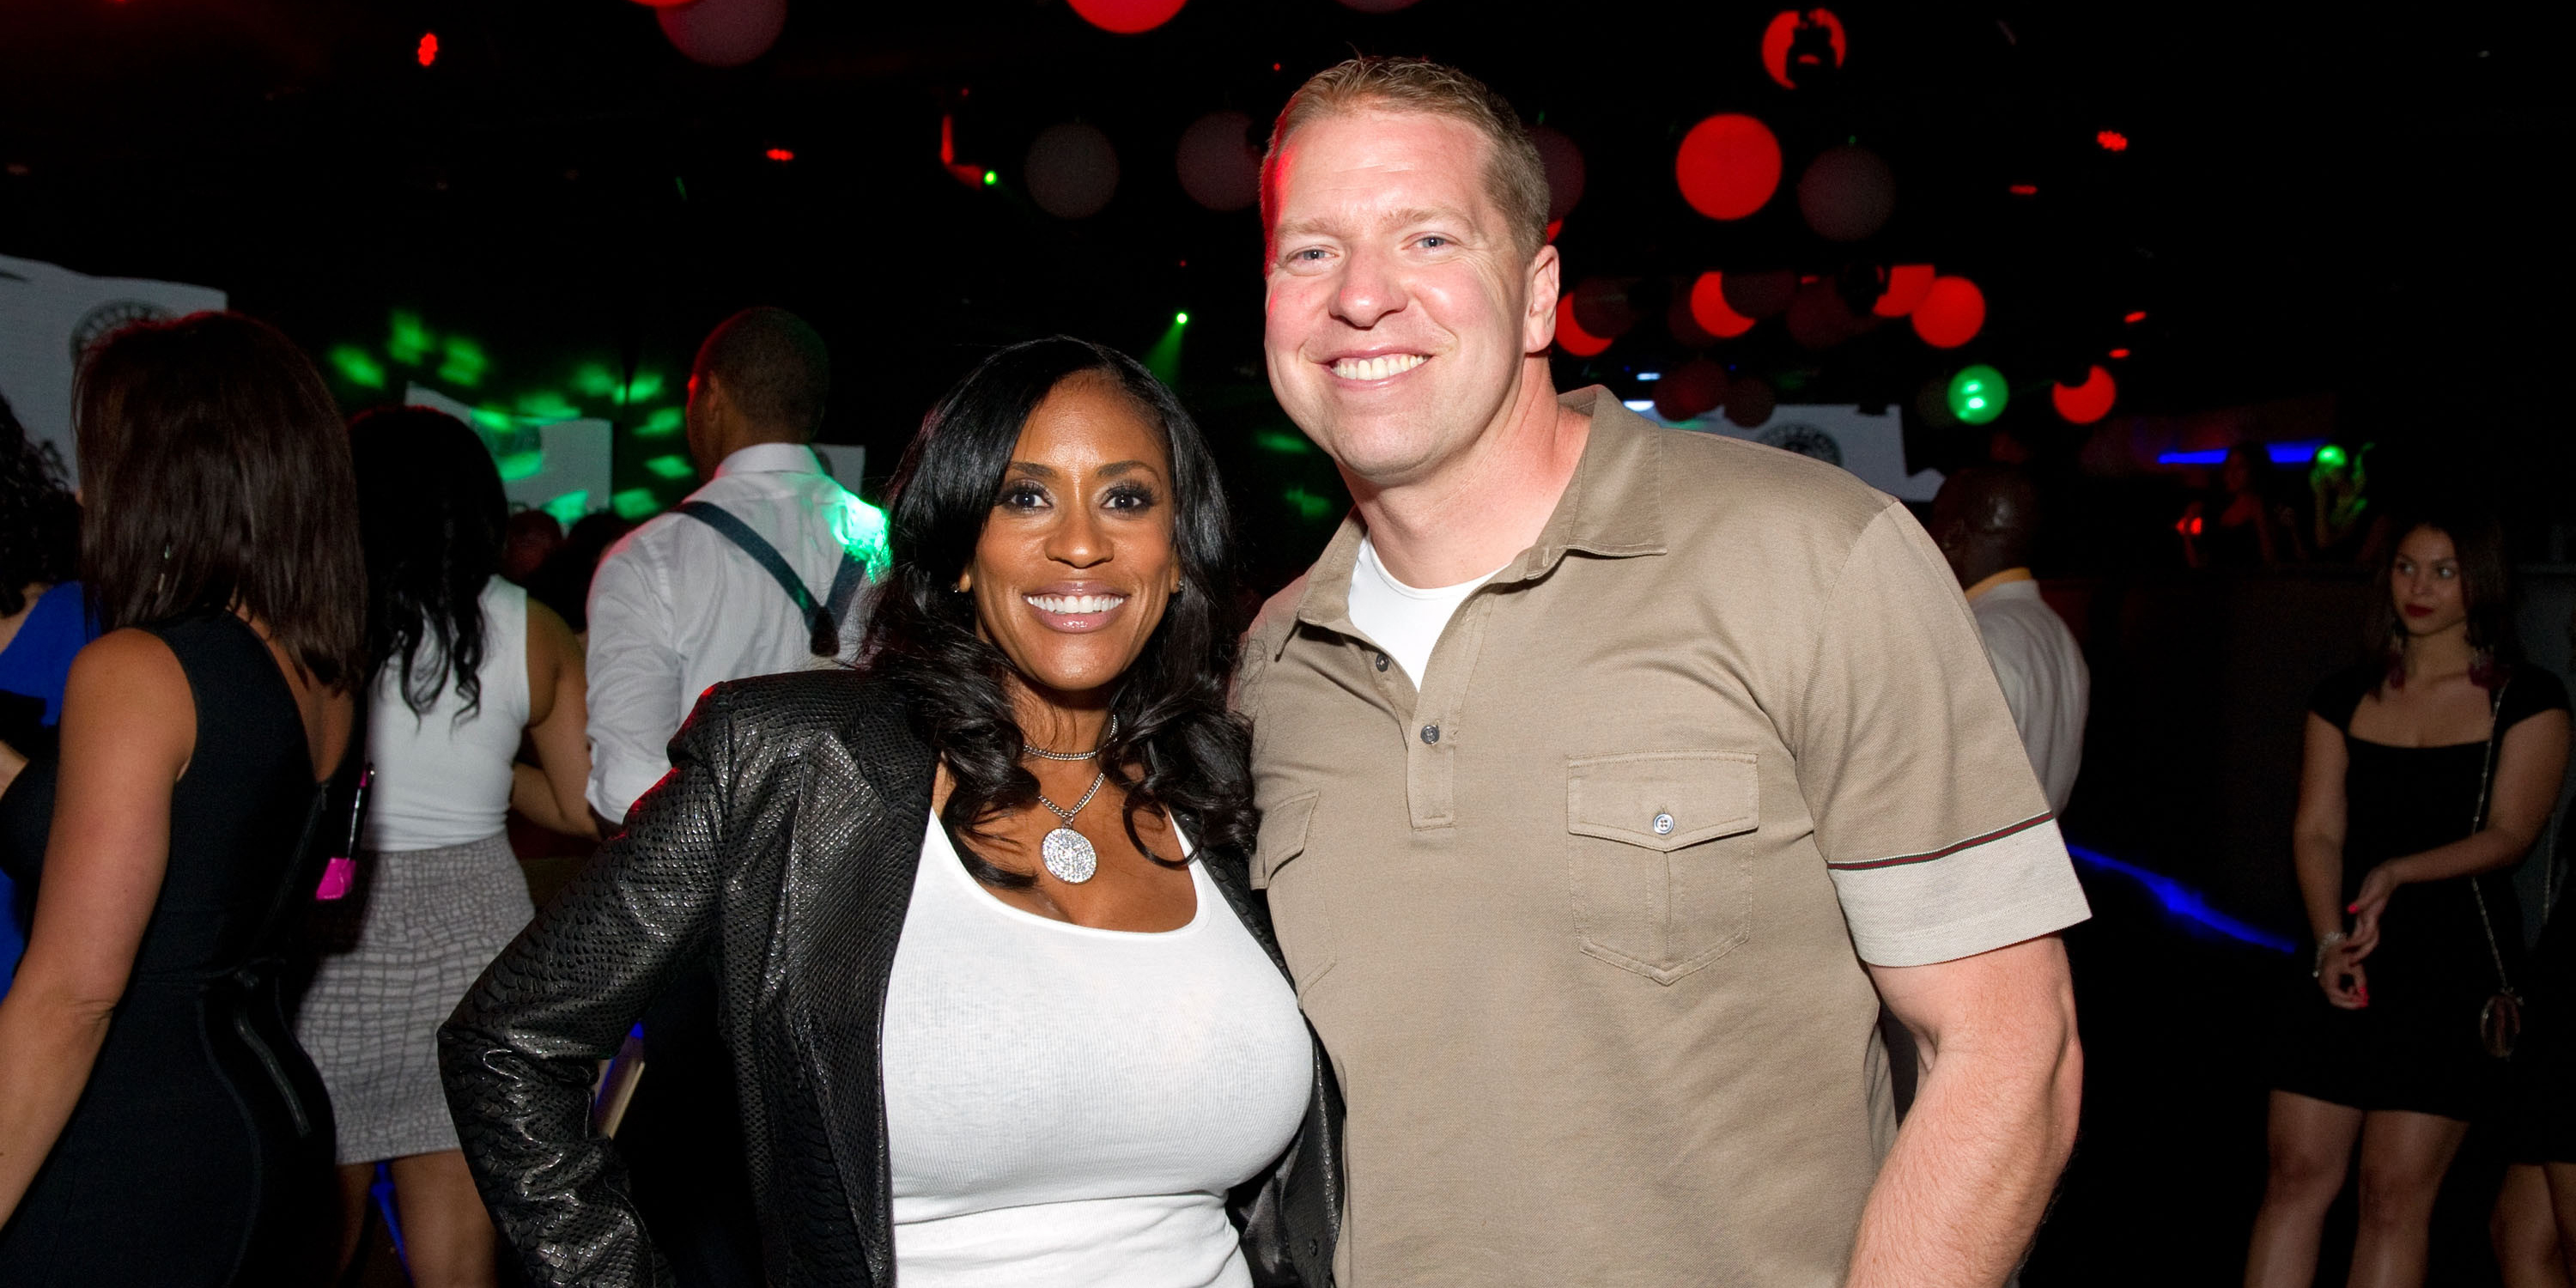 The Untold Truth Of Gary Owen S Wife Kenya Duke She is the owner of the successful travel management firm premier sports and corporate travel. gary owen s wife kenya duke